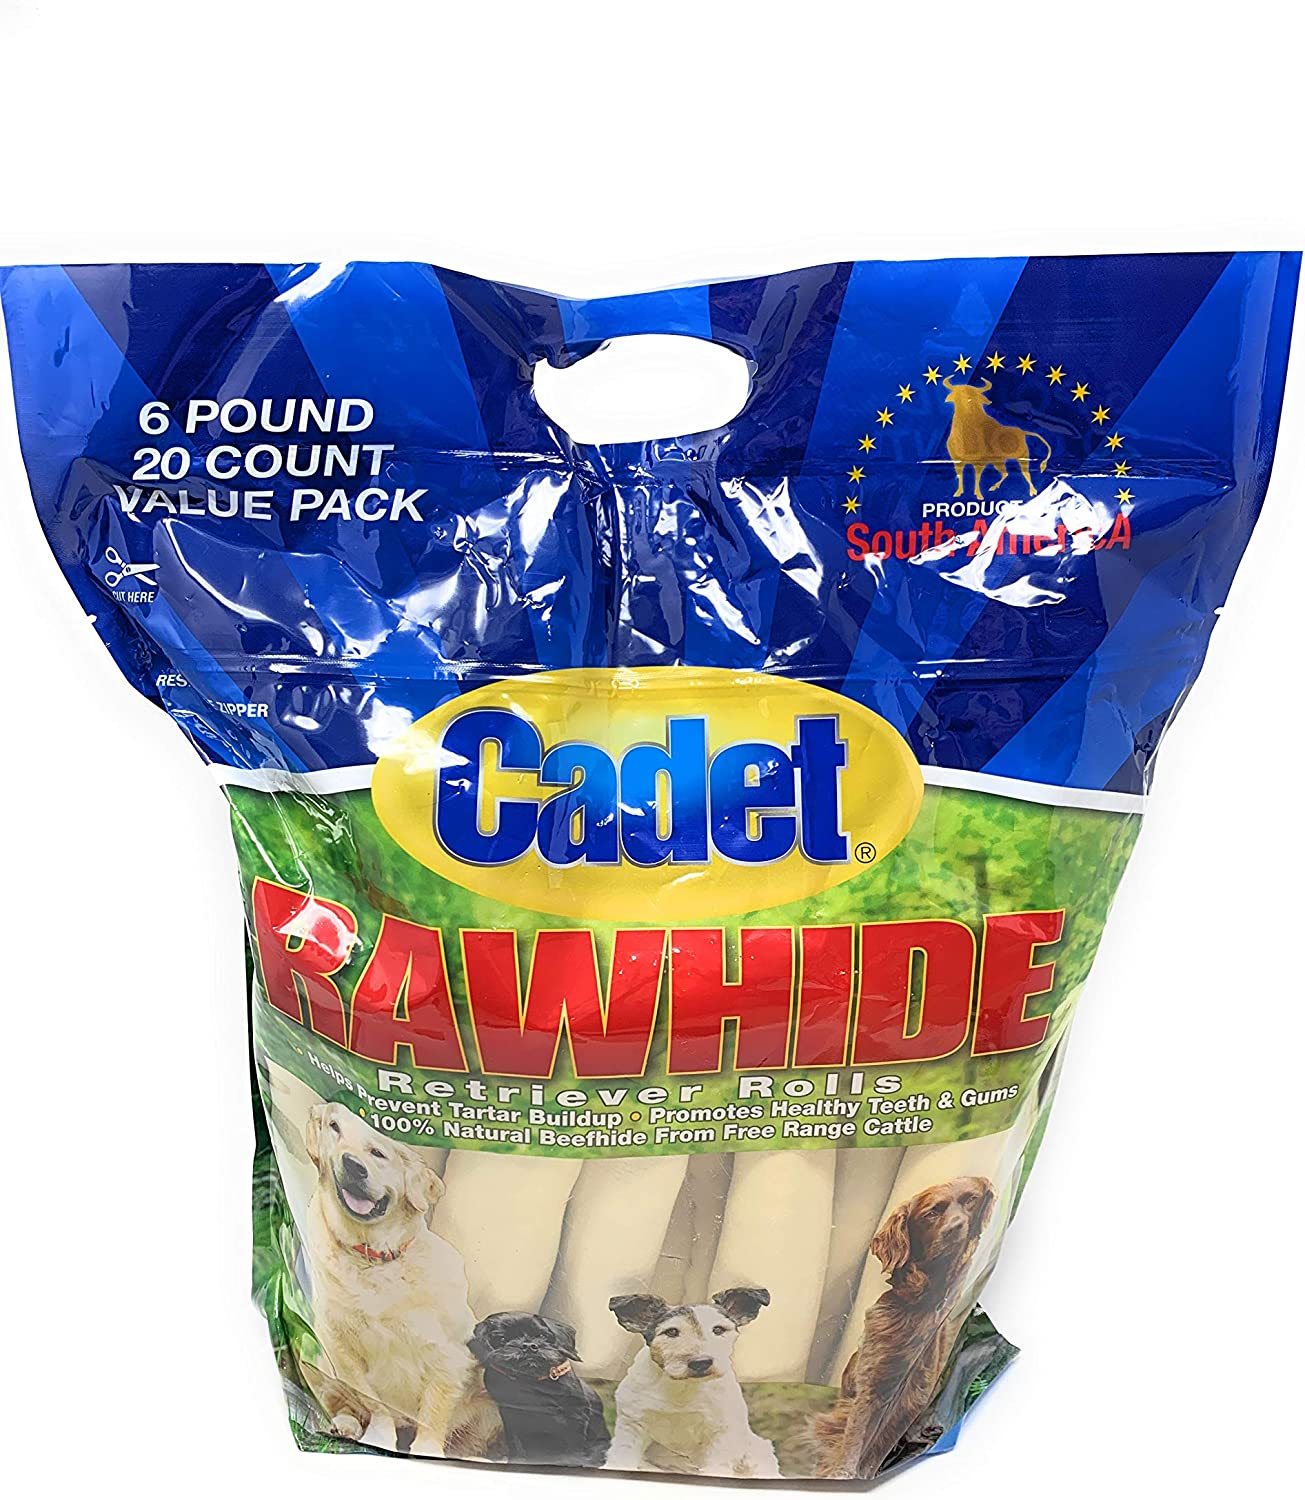 HDP Cadet Retriever Rolls Cheap Challenge the lowest price mail order specialty store Rawhide 10